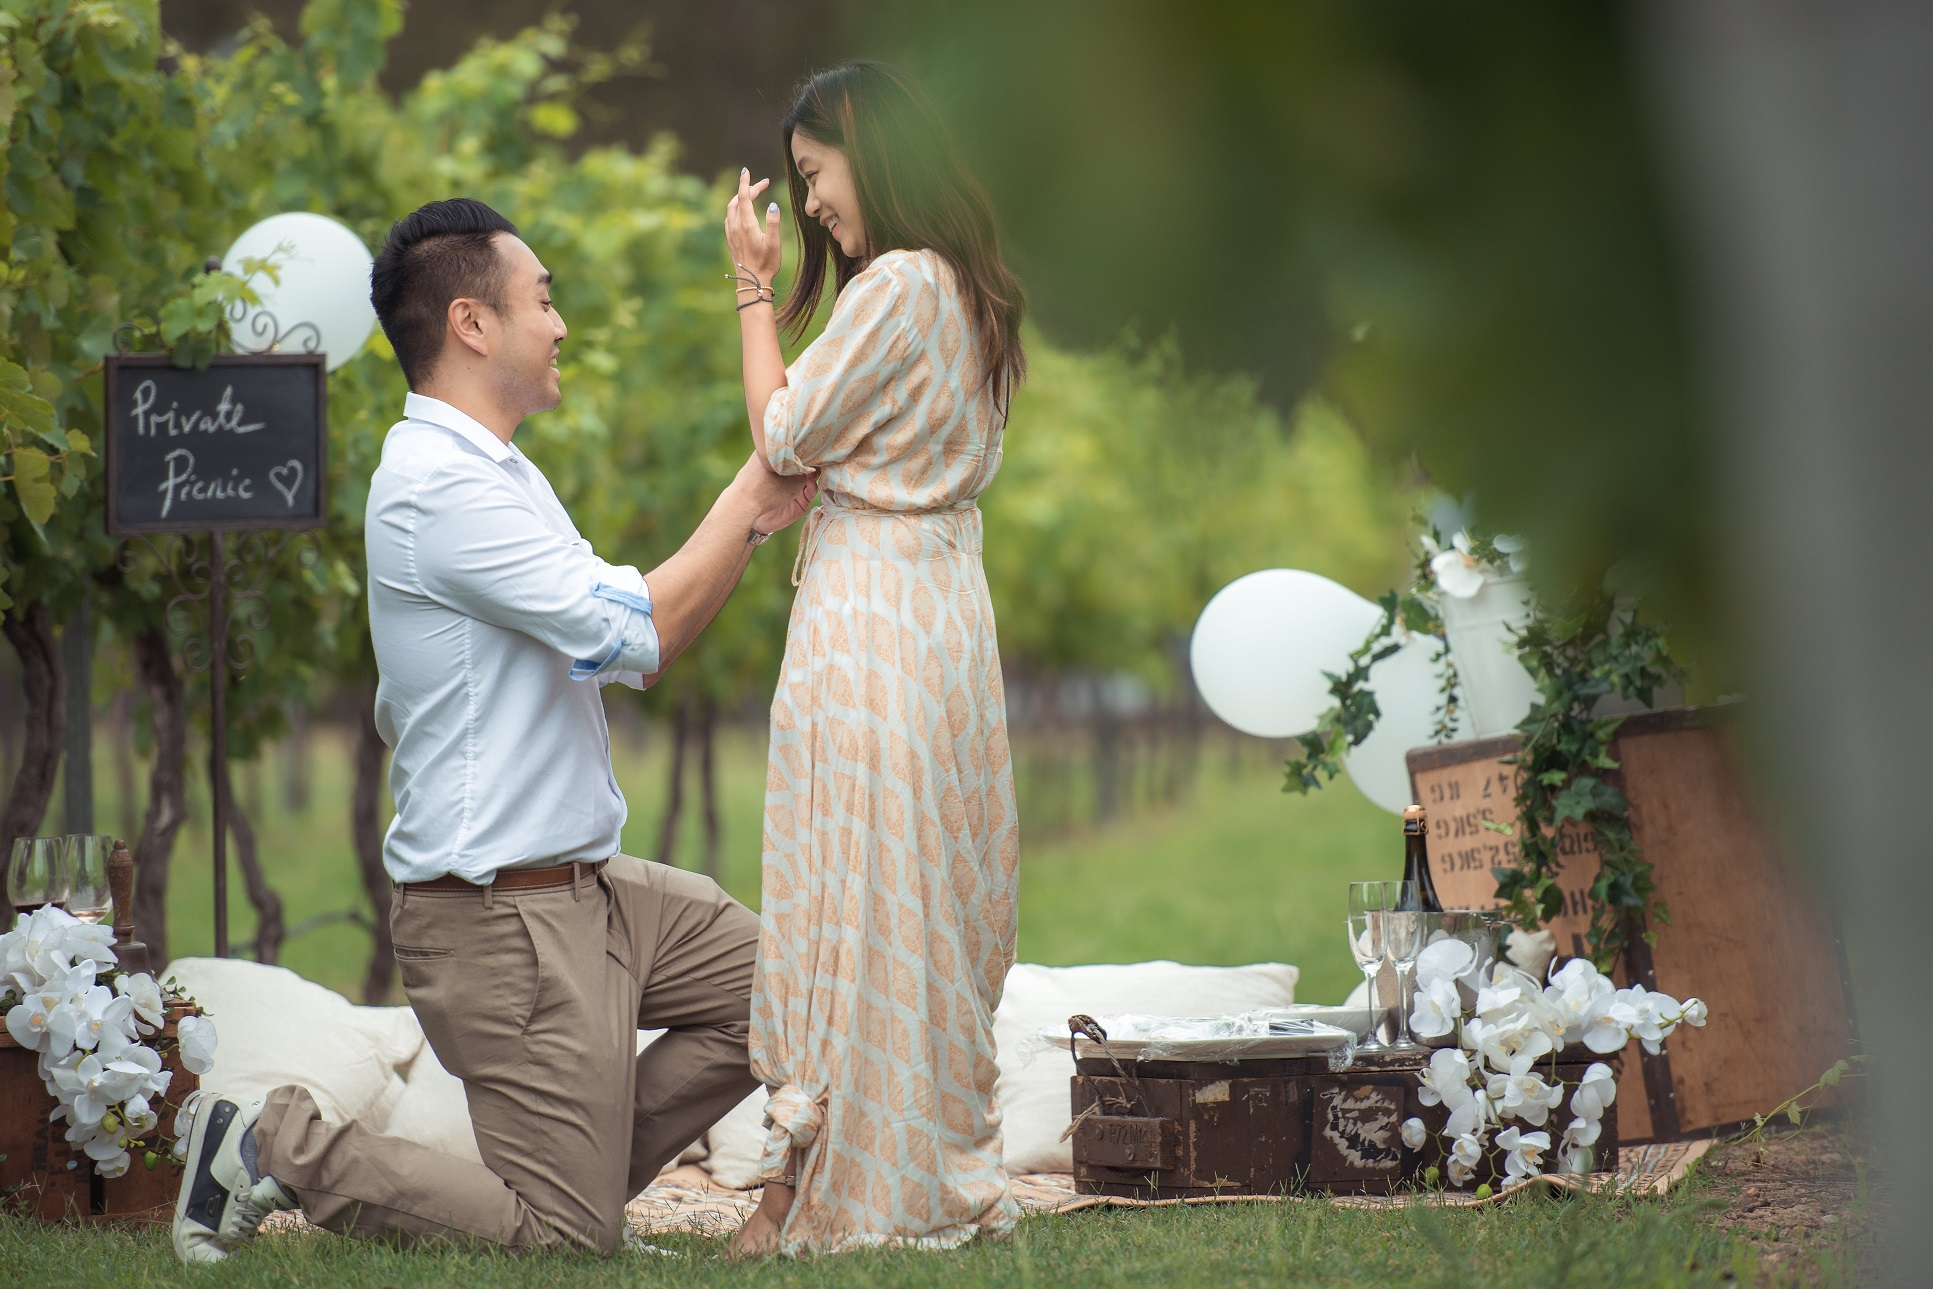 20170101_Unforgettable Proposals_JAH3135